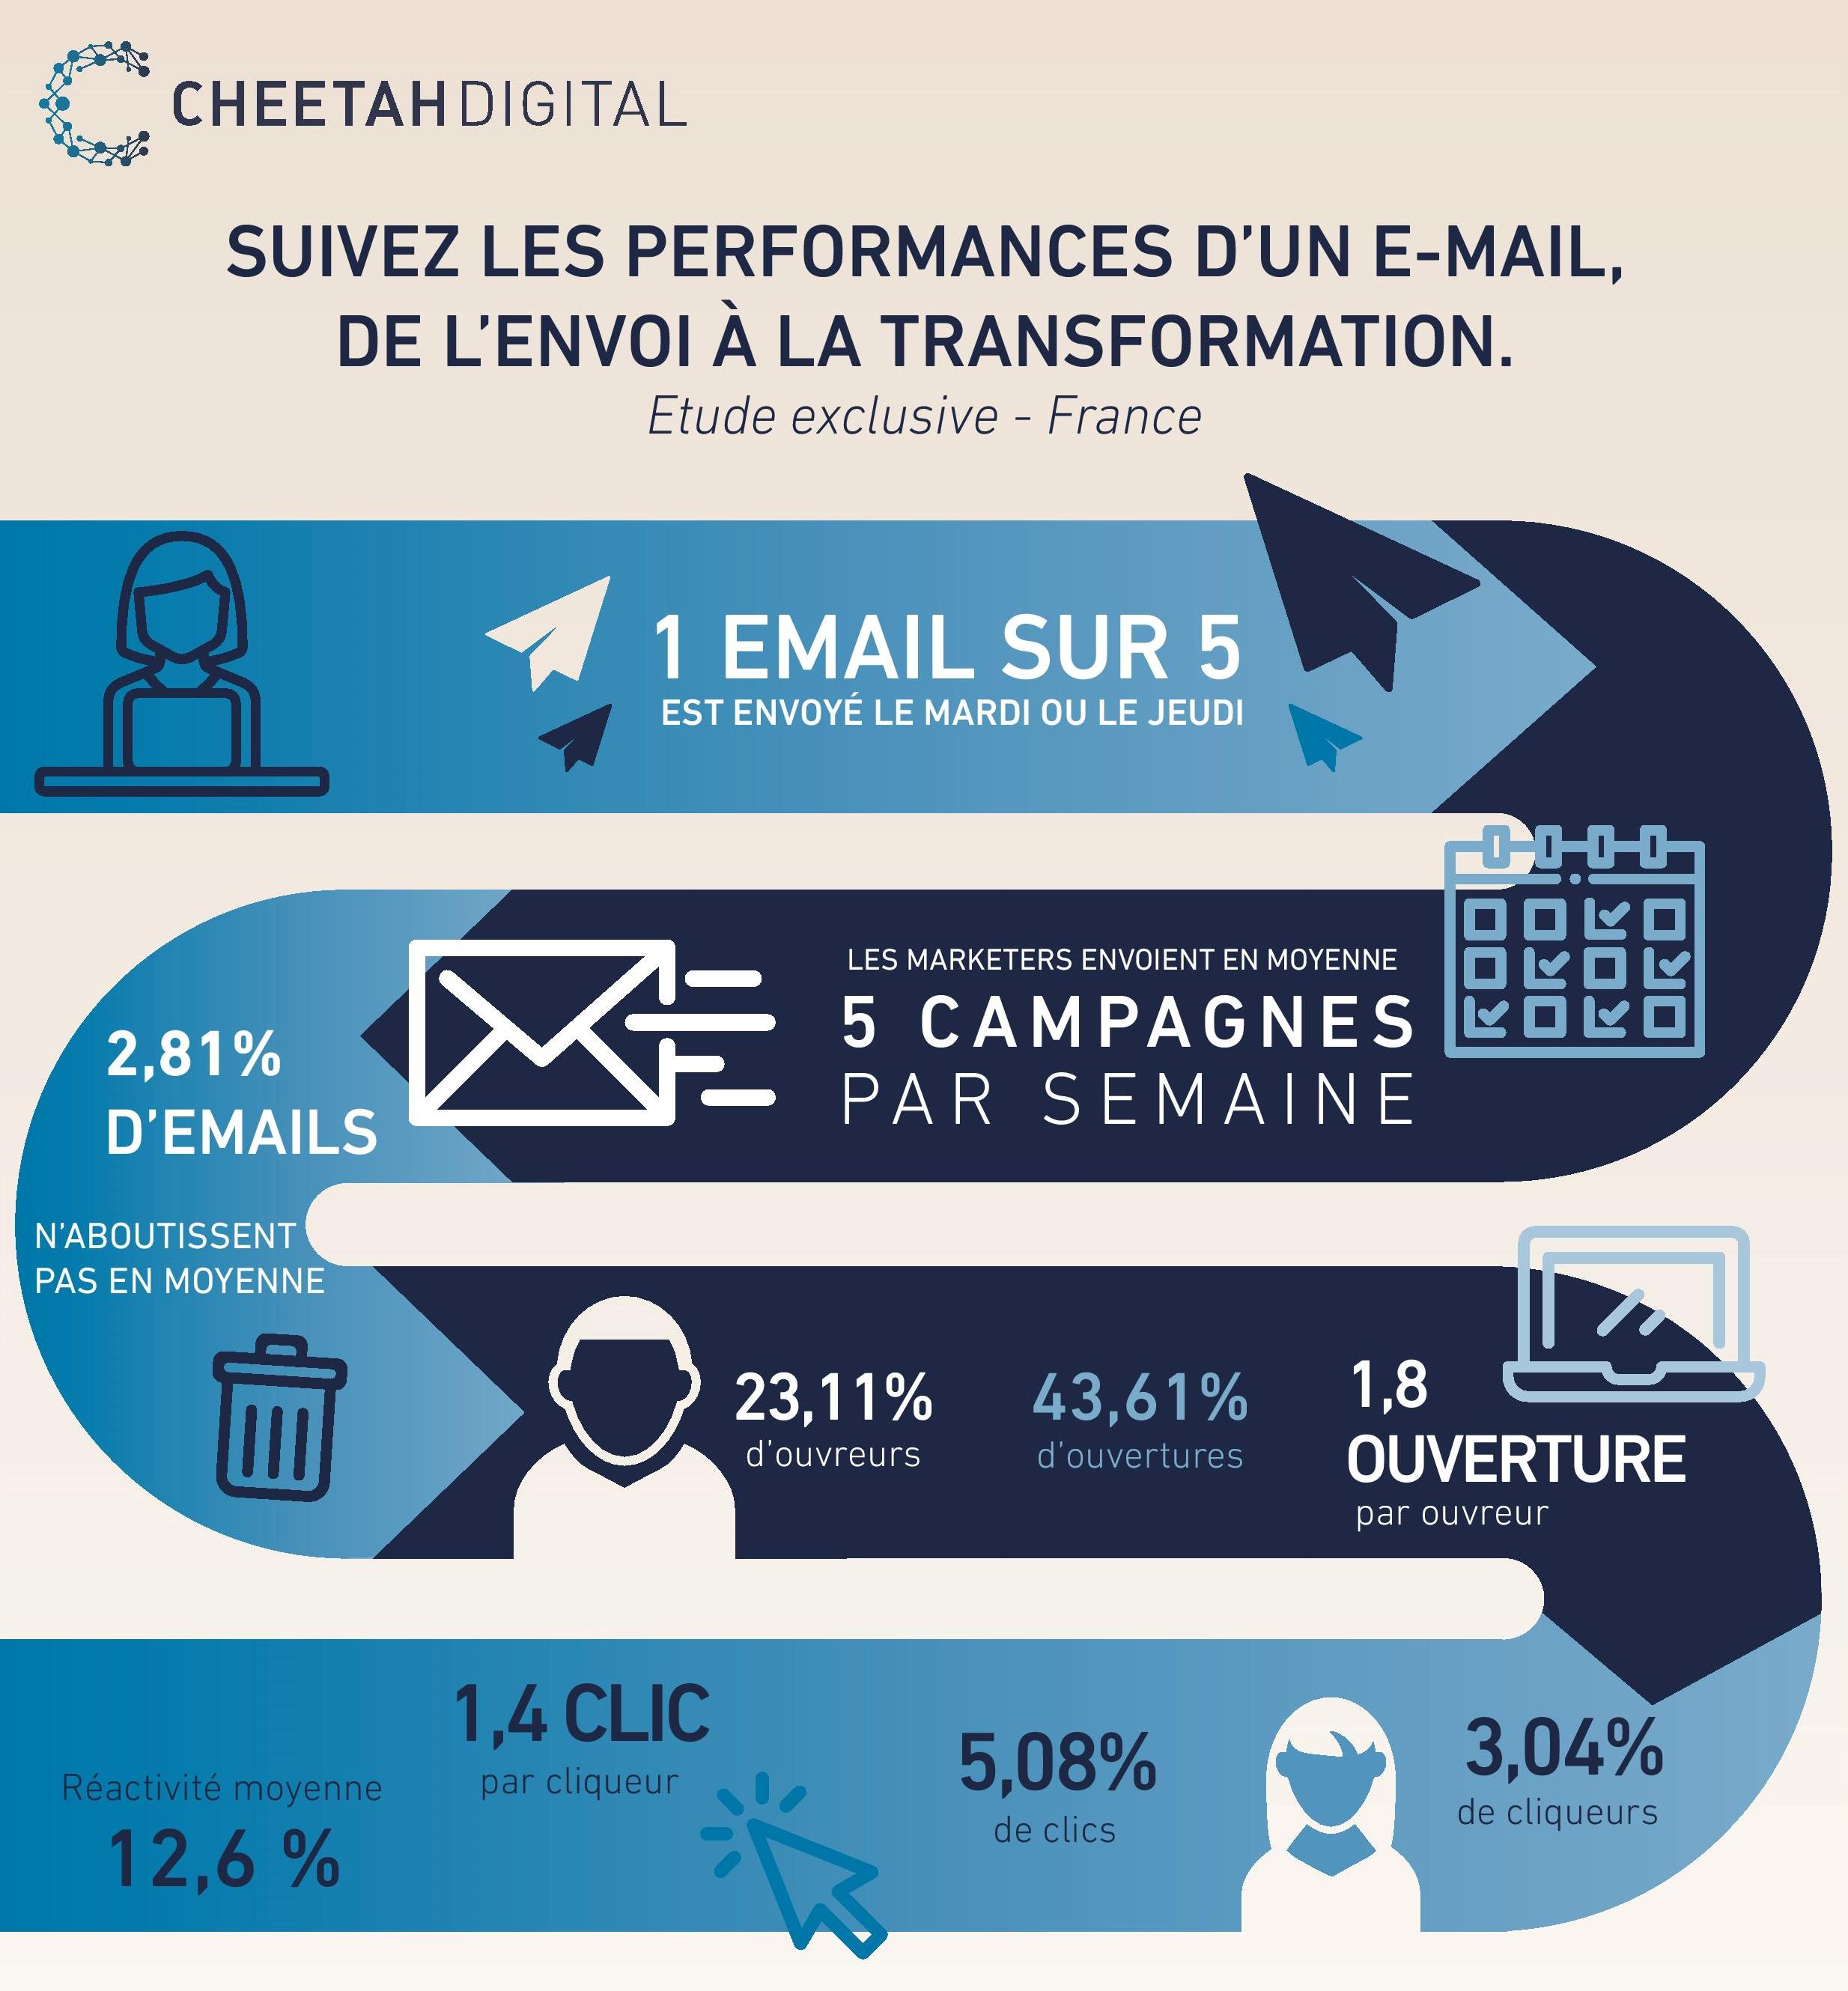 Source : « Performances de l'email marketing en France », Cheetah Digital, 2017.